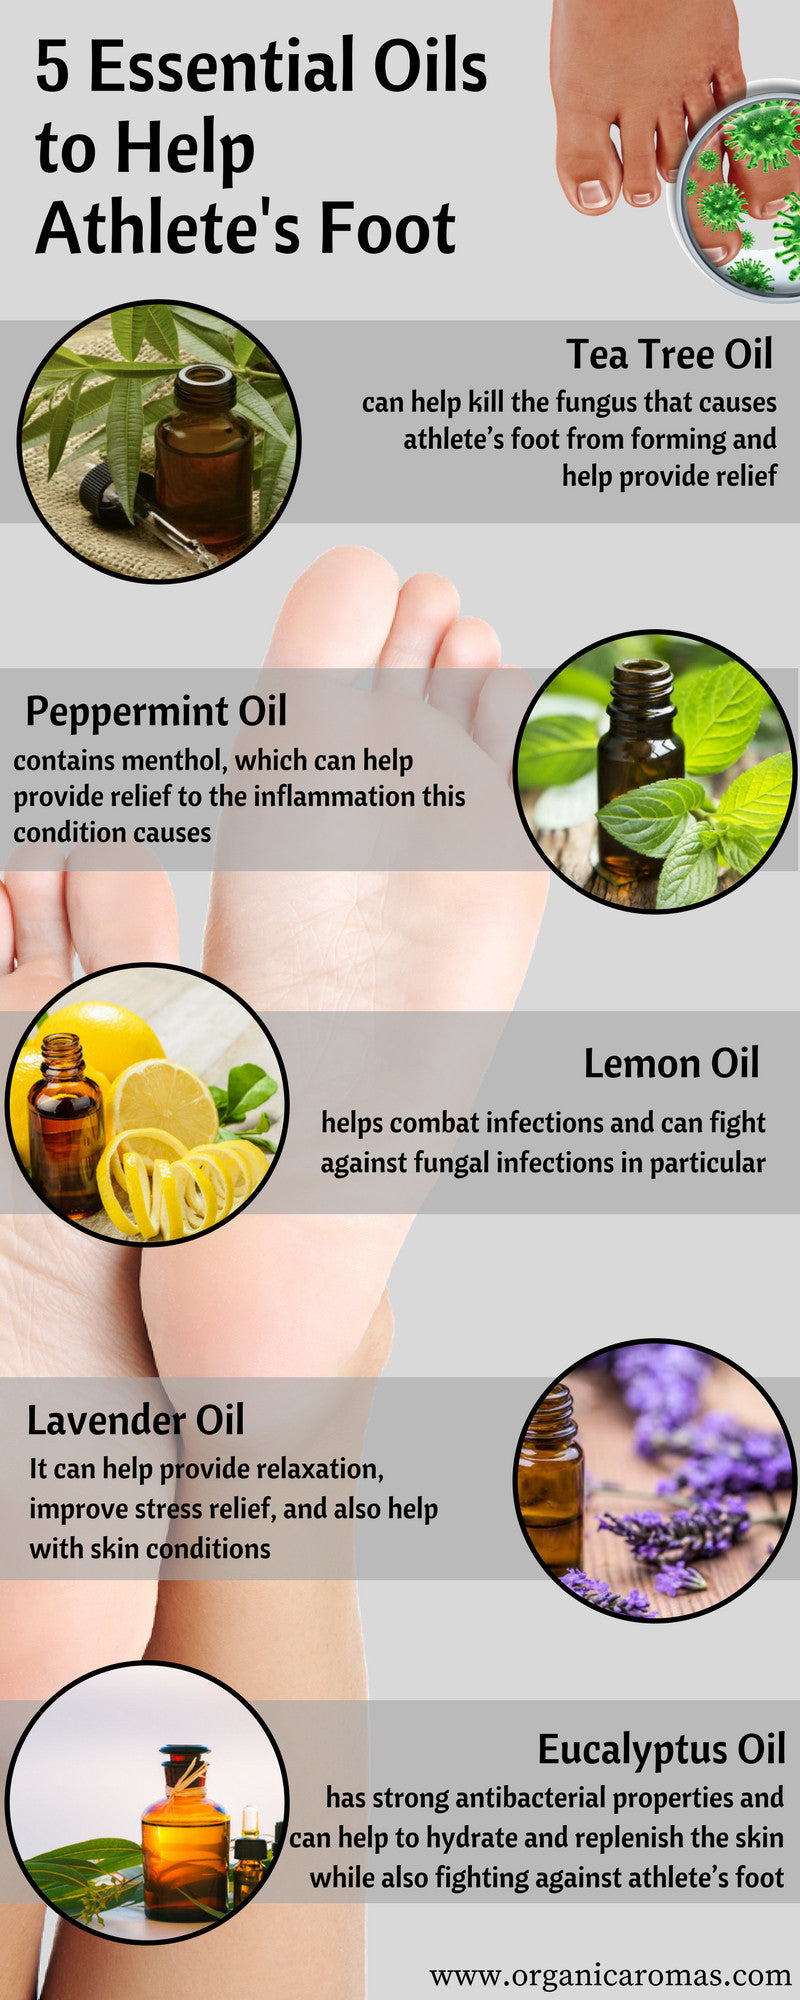 Essential Oils to Help Athelets Foot